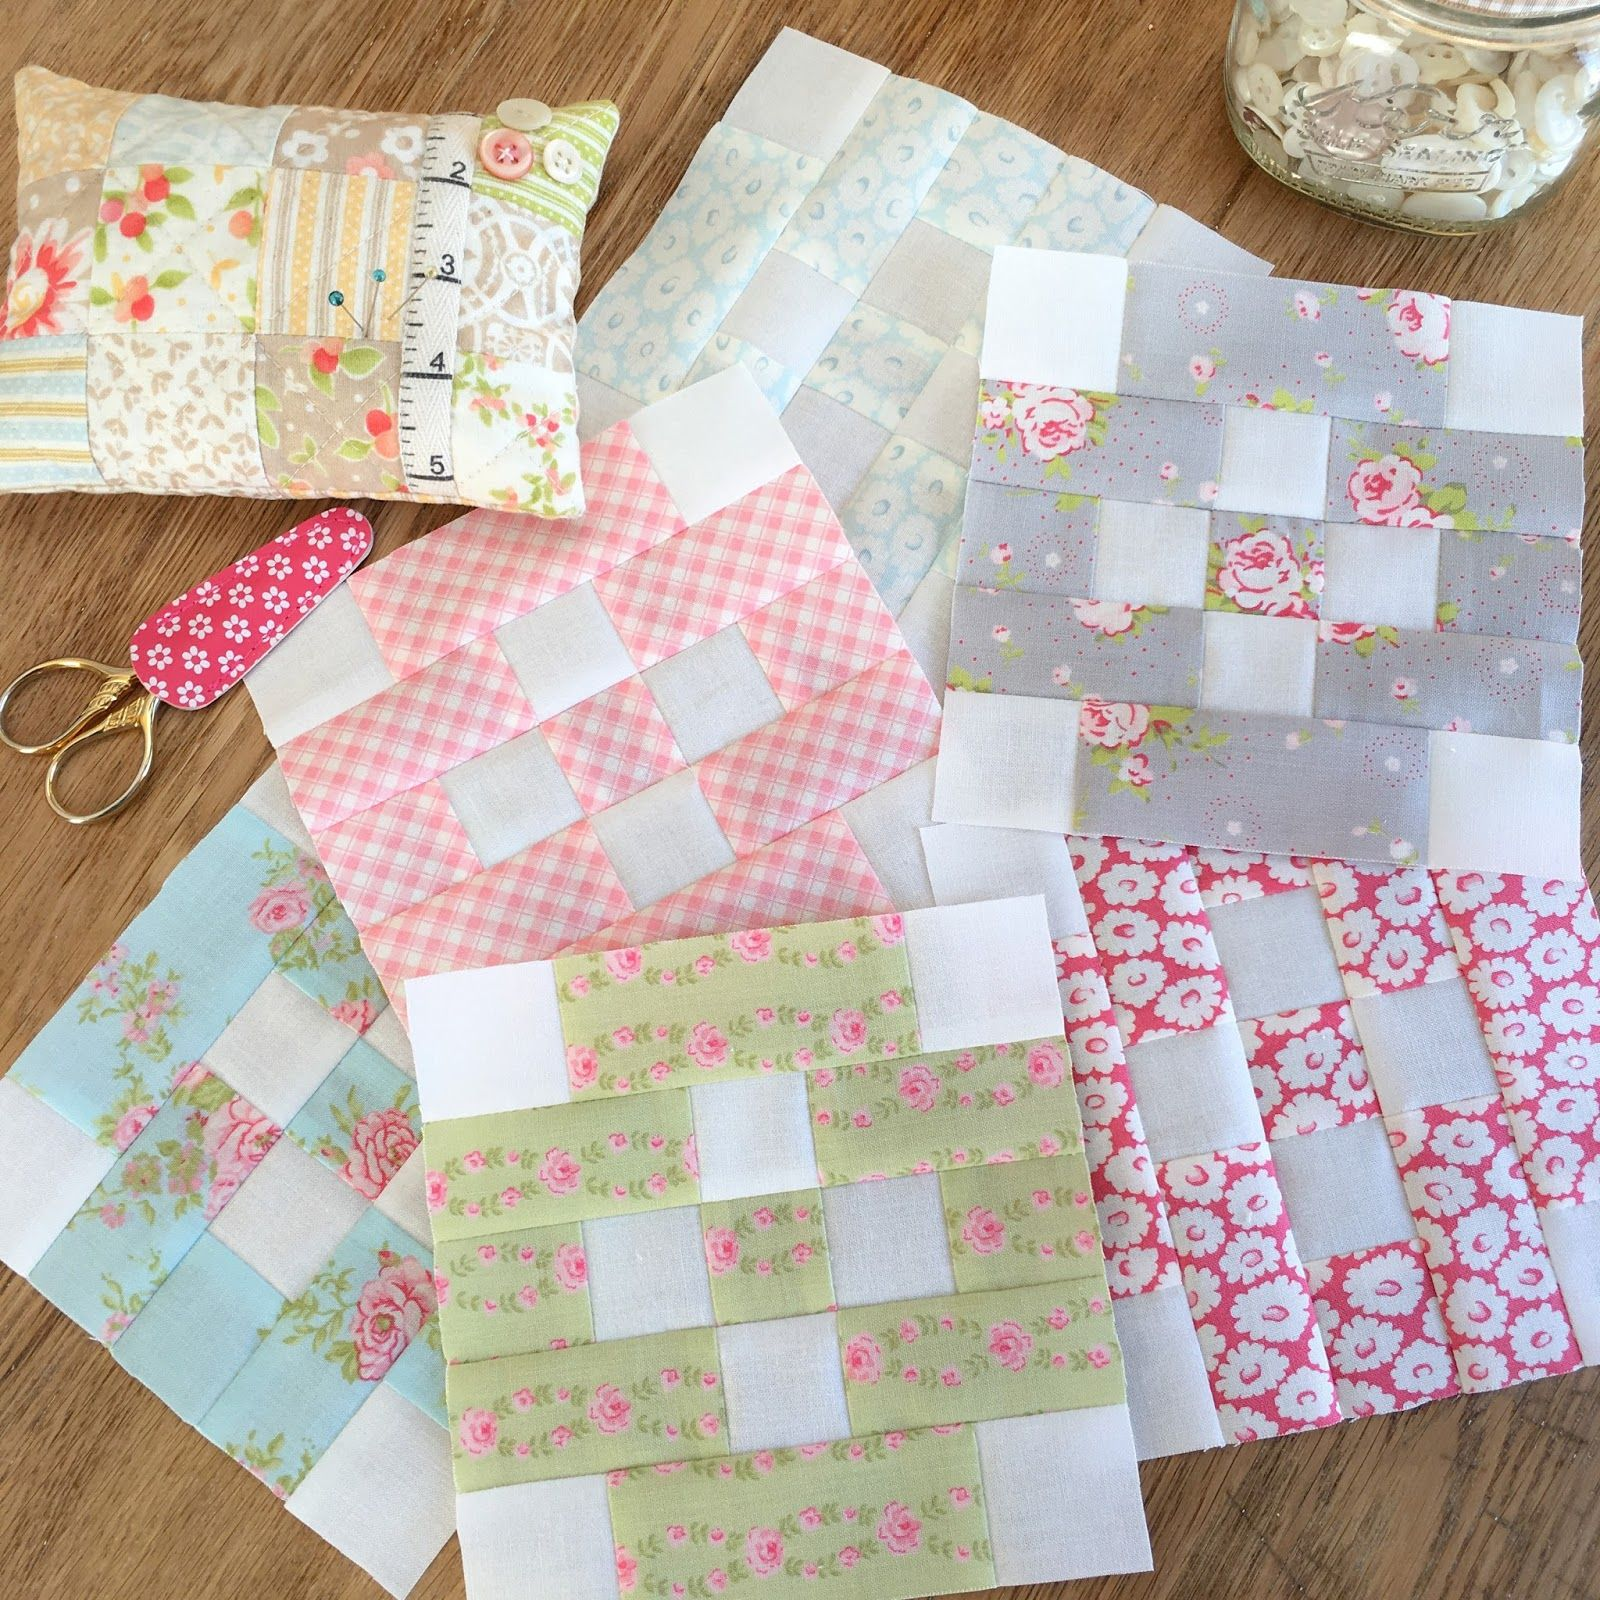 Carried Away Quilting joins the 2017 Patchwork Quilt Along Charity ... : quilting event - Adamdwight.com